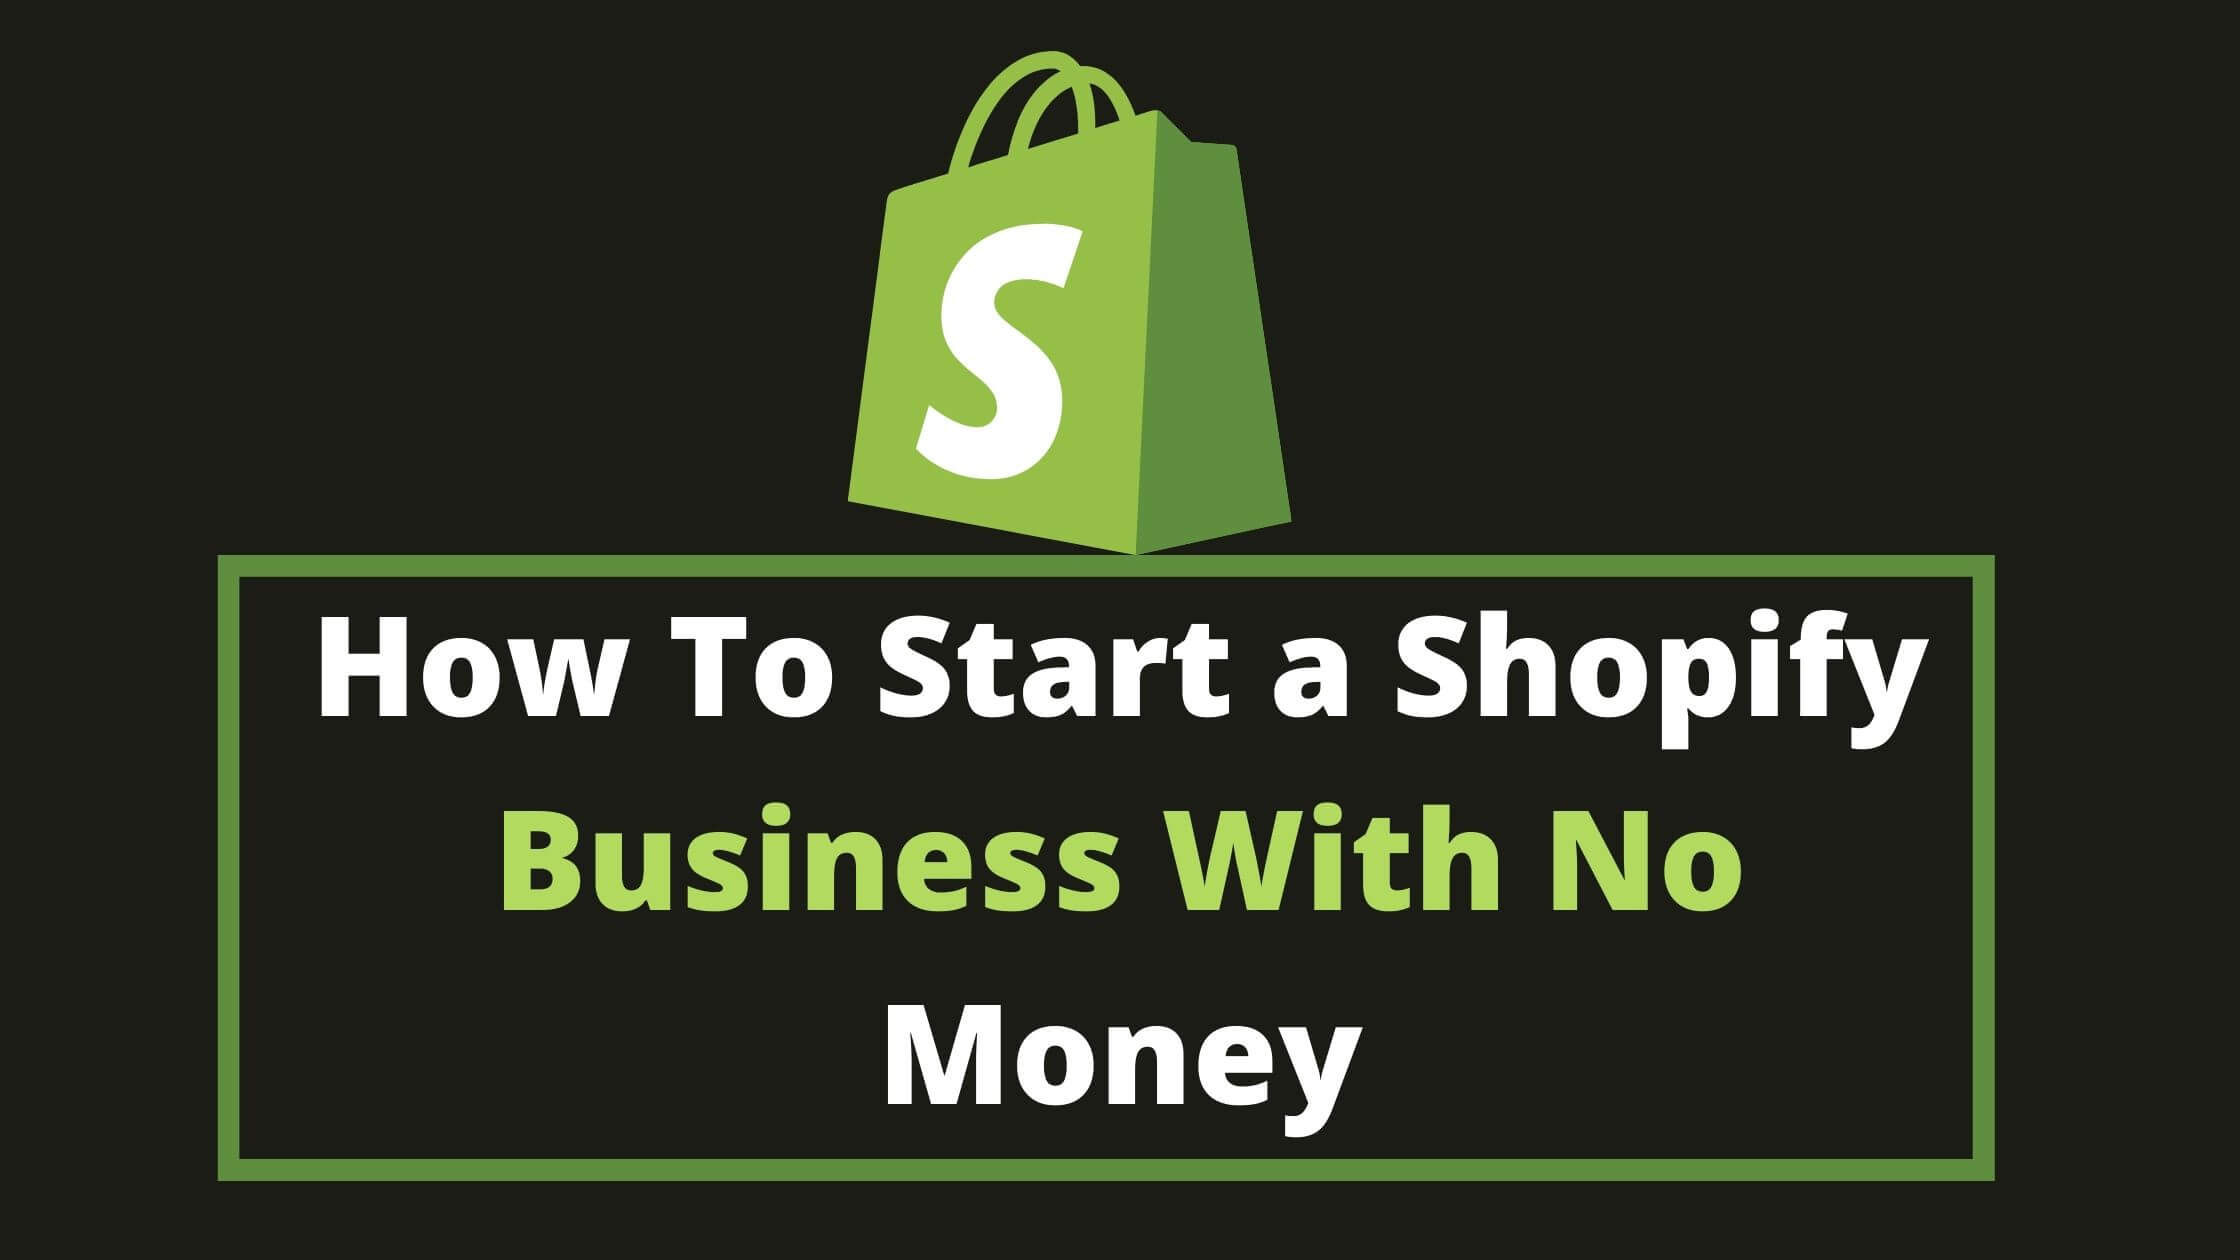 How To Start a Shopify Business With No Money